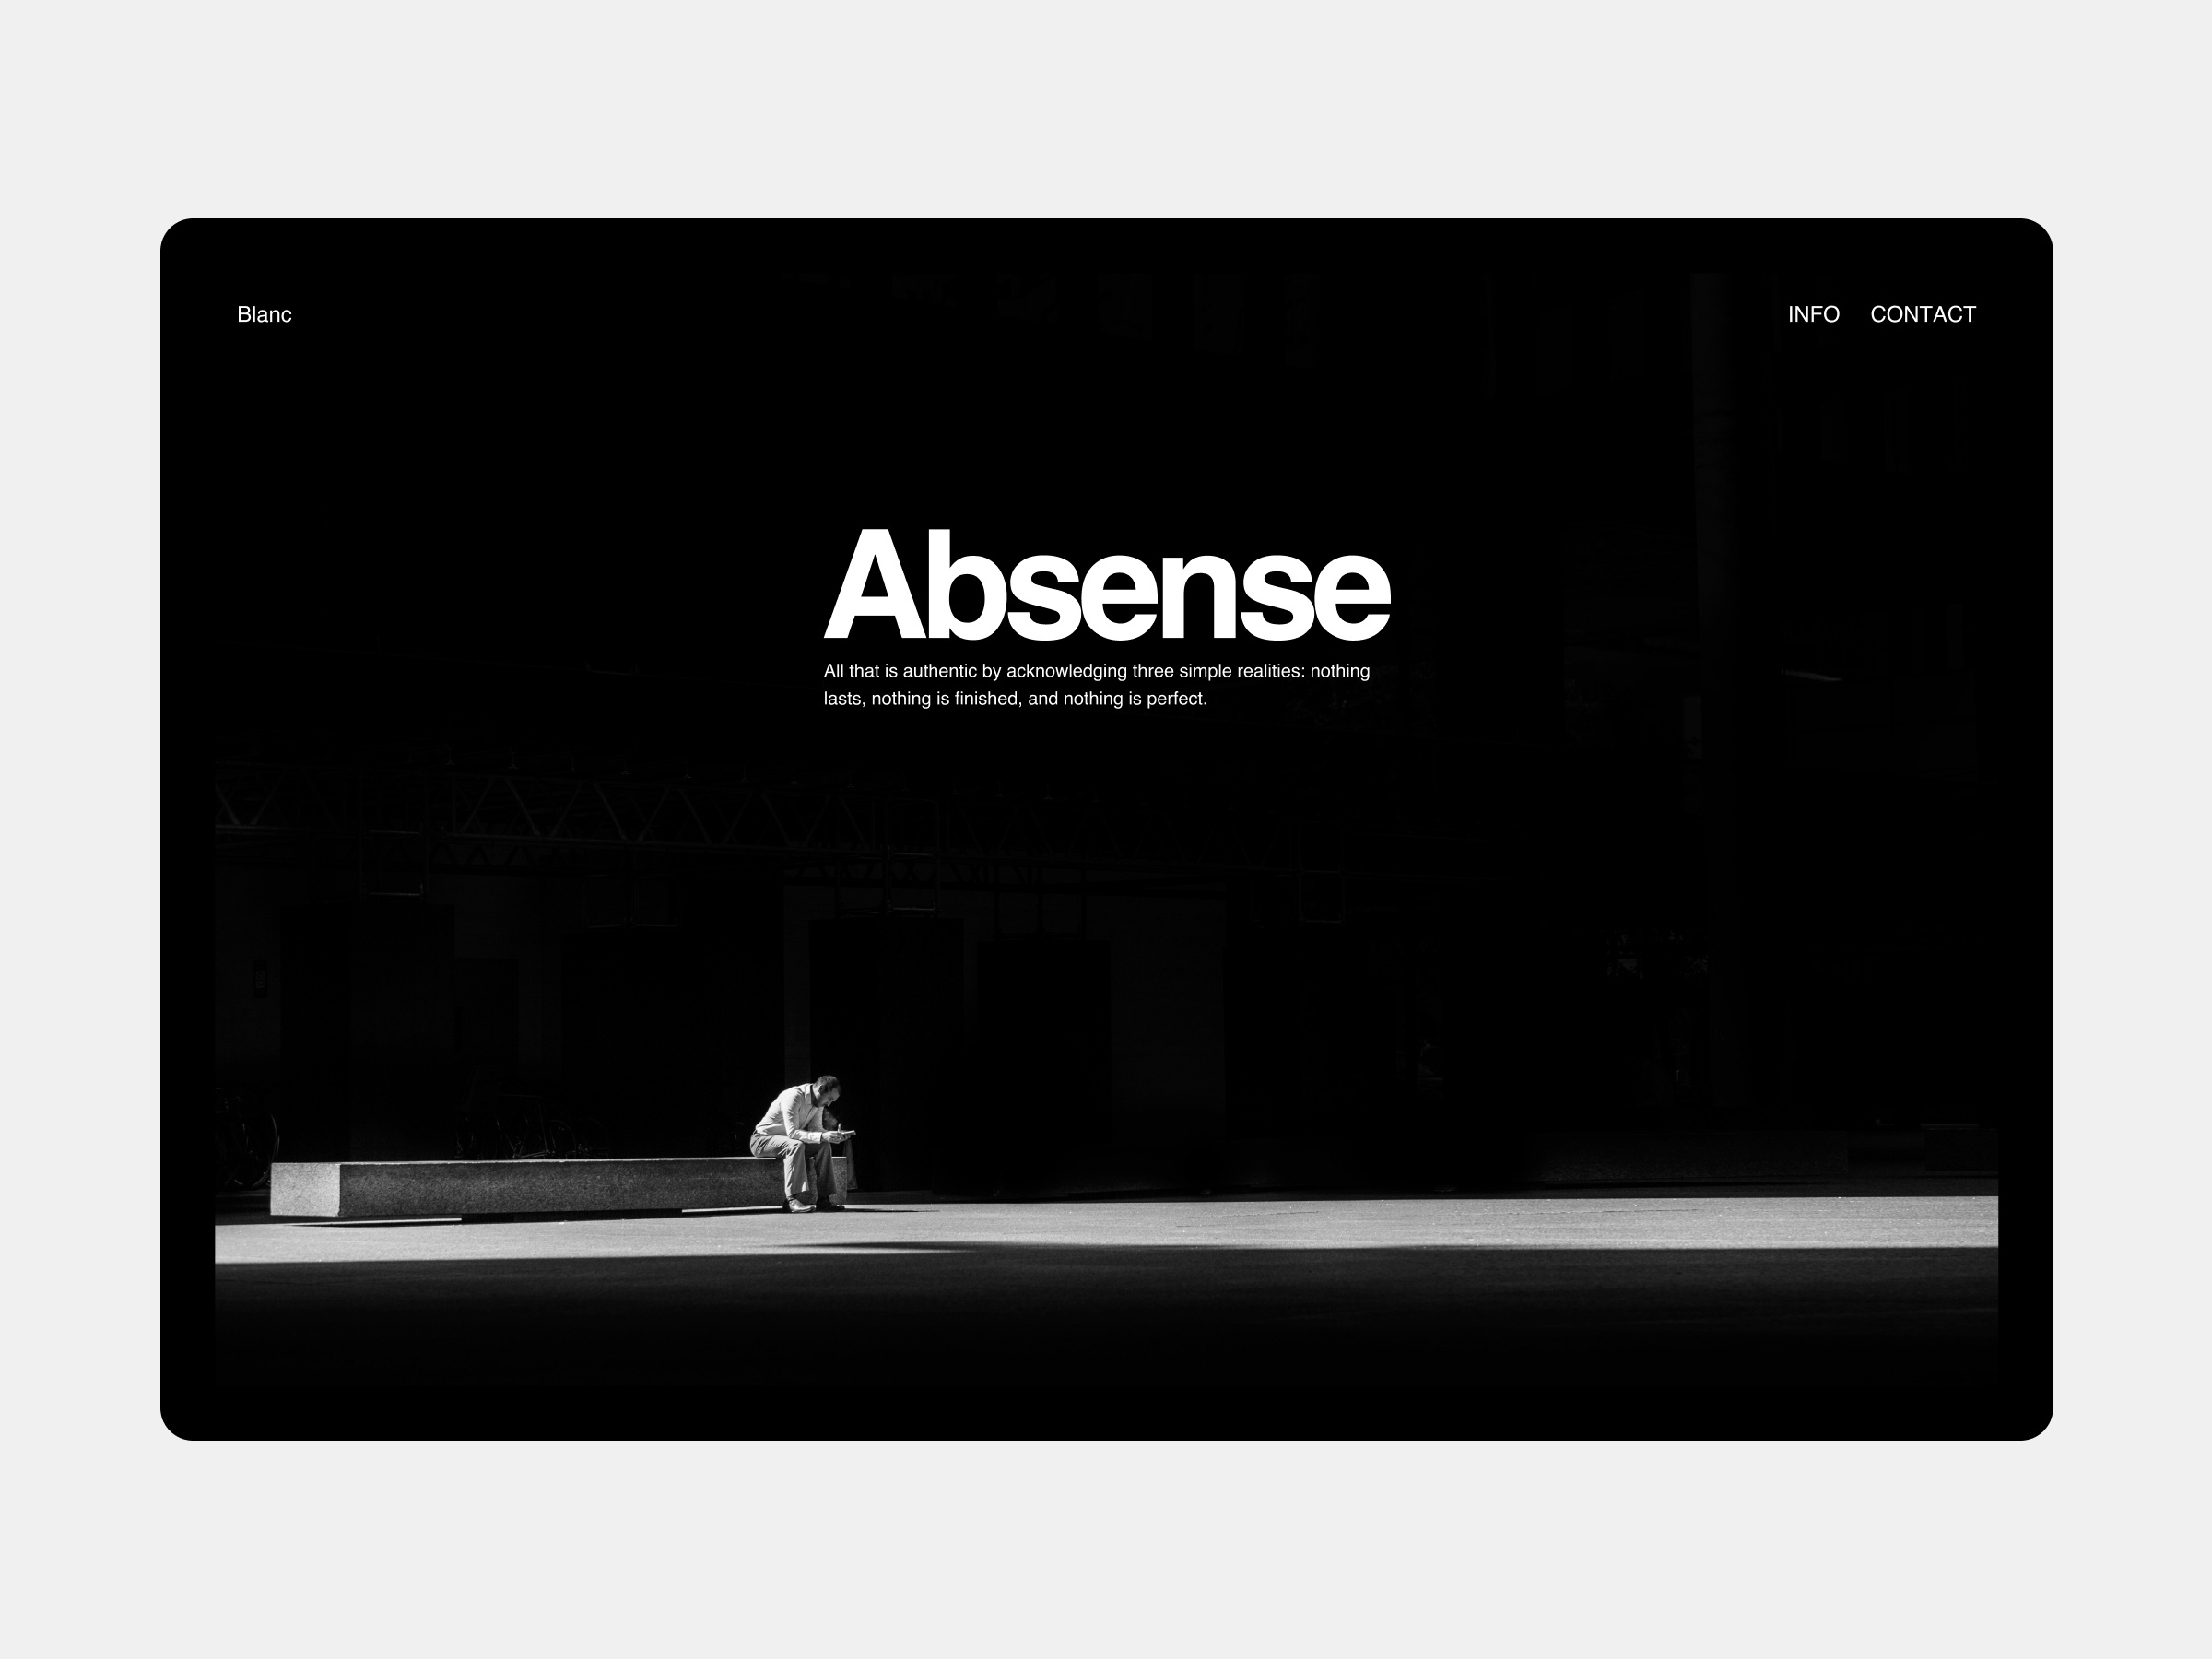 Absense By Himanshu On Dribbble The (local) nonexistence of something. dribbble